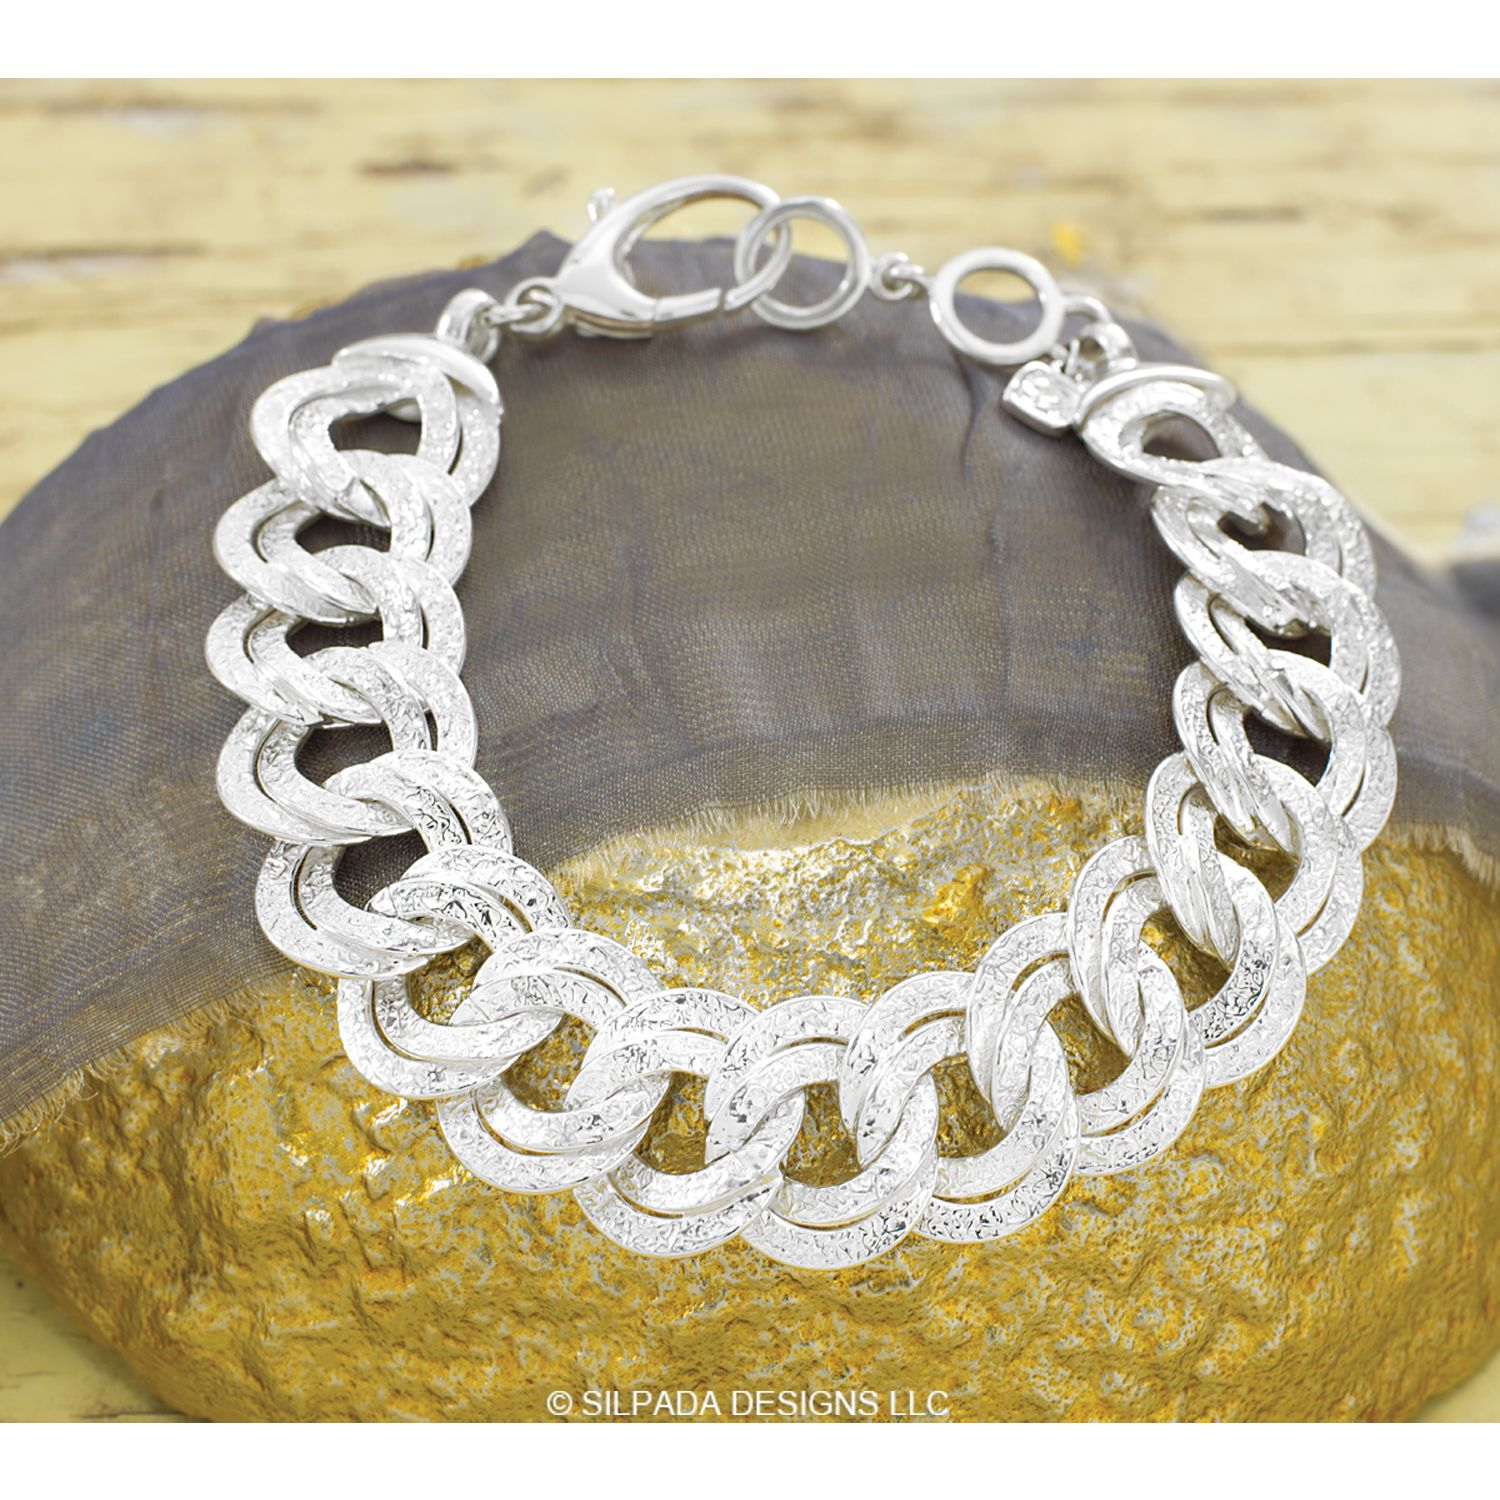 NEW Silpada Chicest Link Bracelet!  10% off until the end of September...  for Canada Shop at  mysilpada.ca/kimberley.dipenta